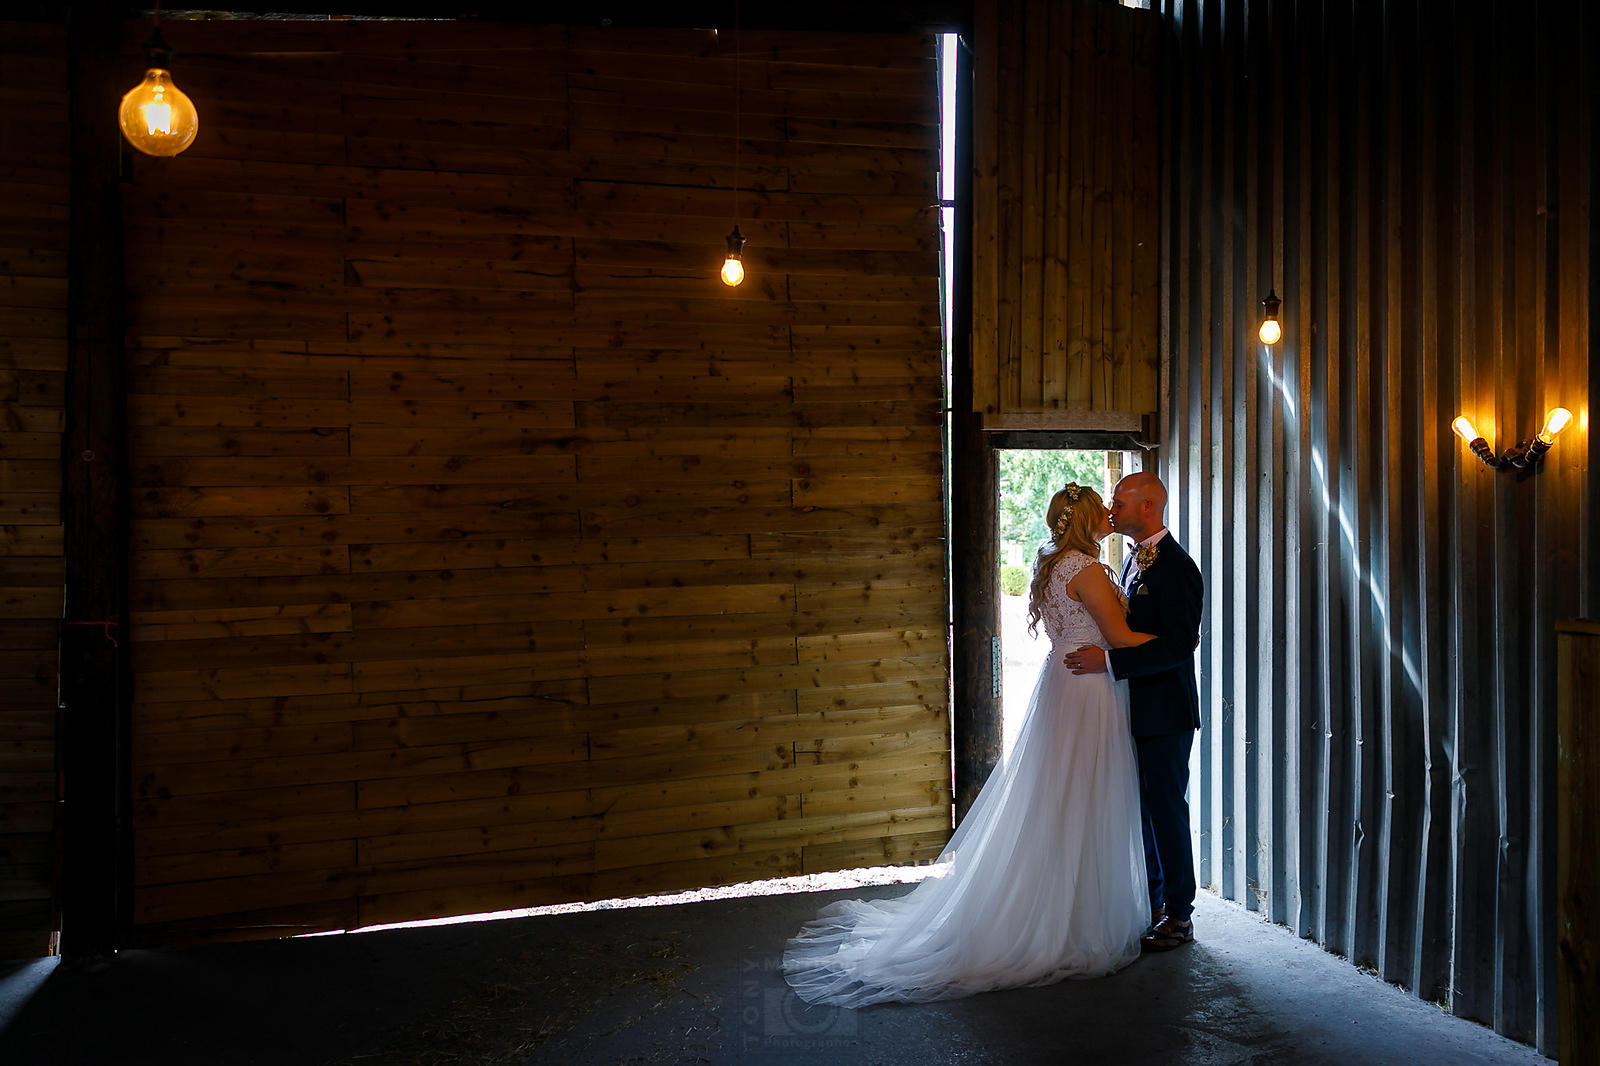 Wedding at St James the Great Church, Longdon & Bilston Brook Wedding Barn, Lichfield, Staffordshire, UK